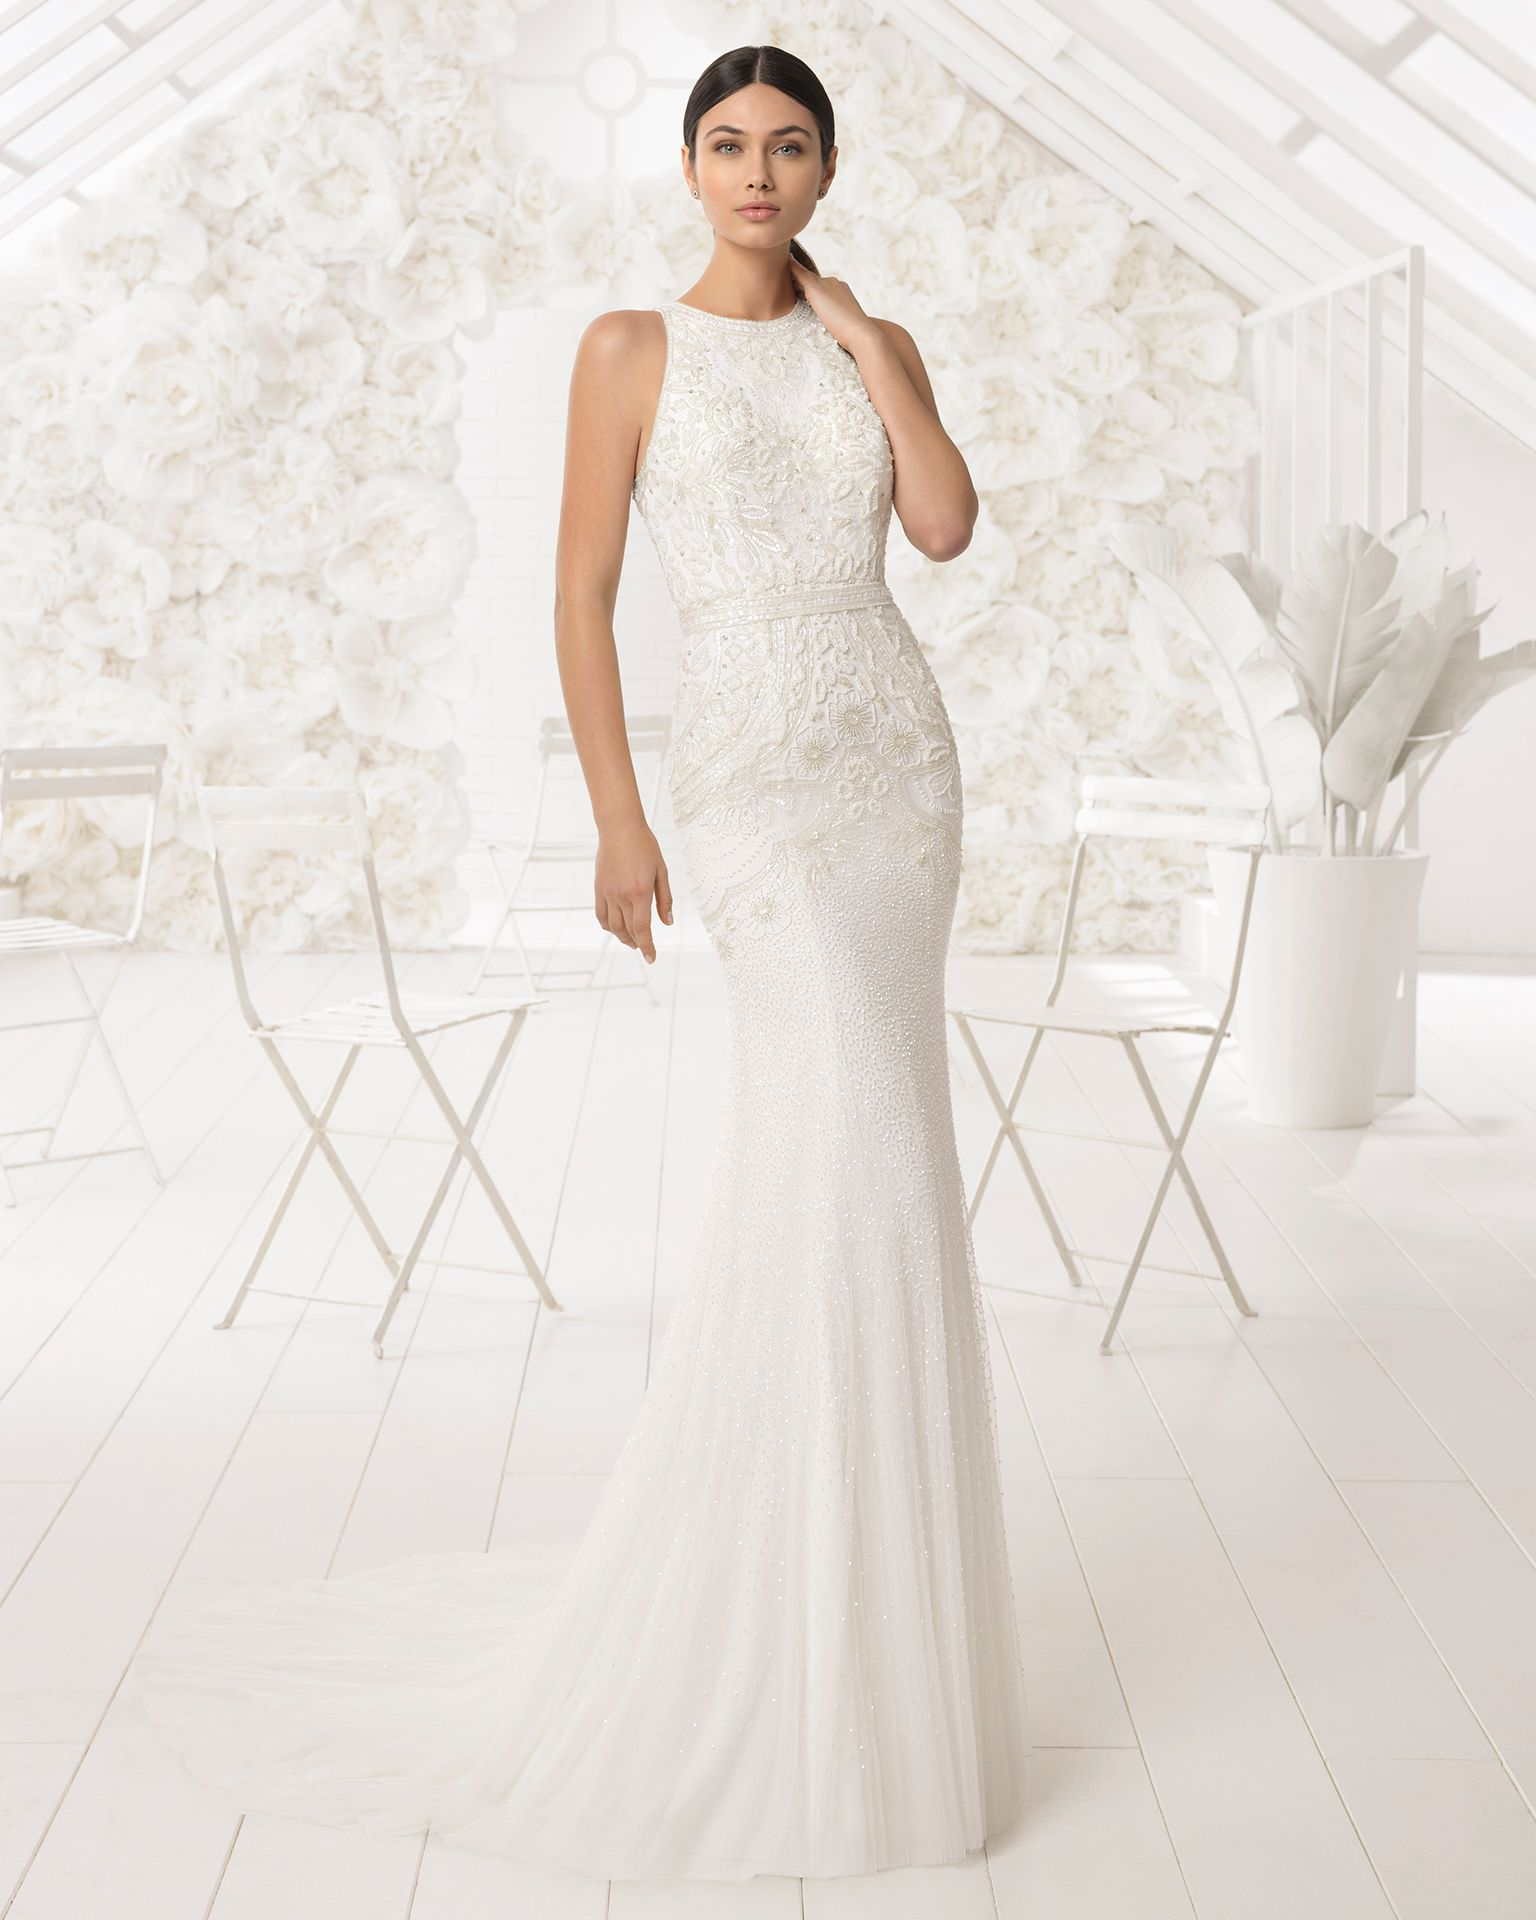 7cc8ad6b9c ... wedding dress that stylizes the female figure s natural beauty and  comes with a halter neckline that exudes class. 2018 Rosa Clará Soft  Collection.